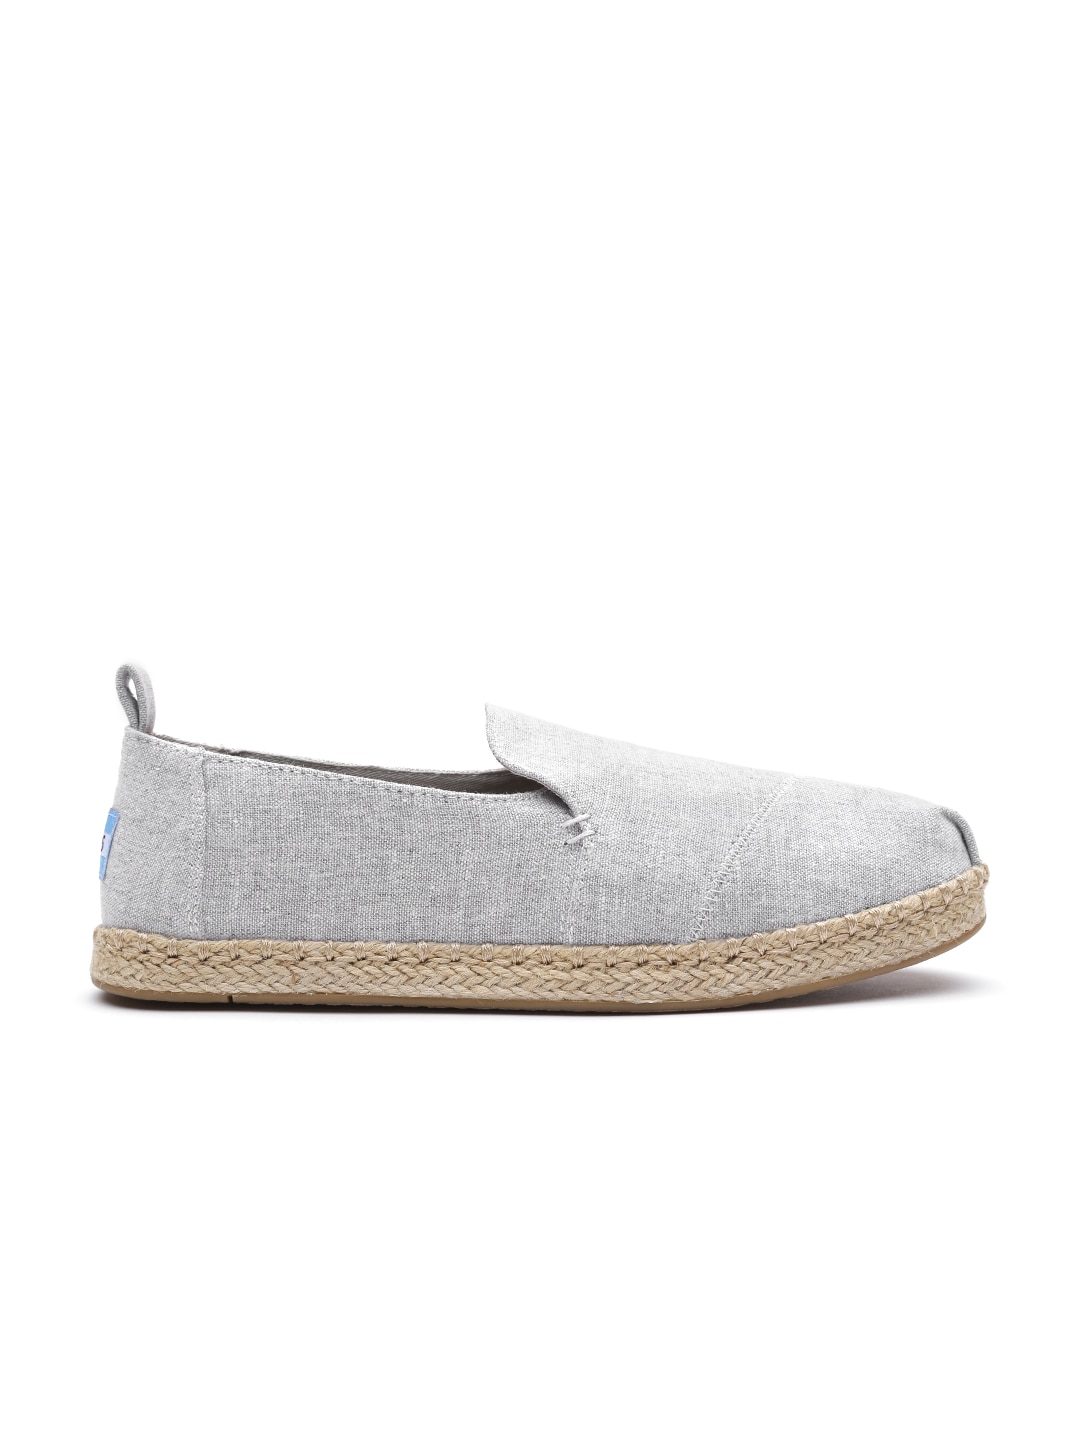 079ae50eac5 Buy TOMS Women Taupe Striped Espadrilles - Casual Shoes for Women ...